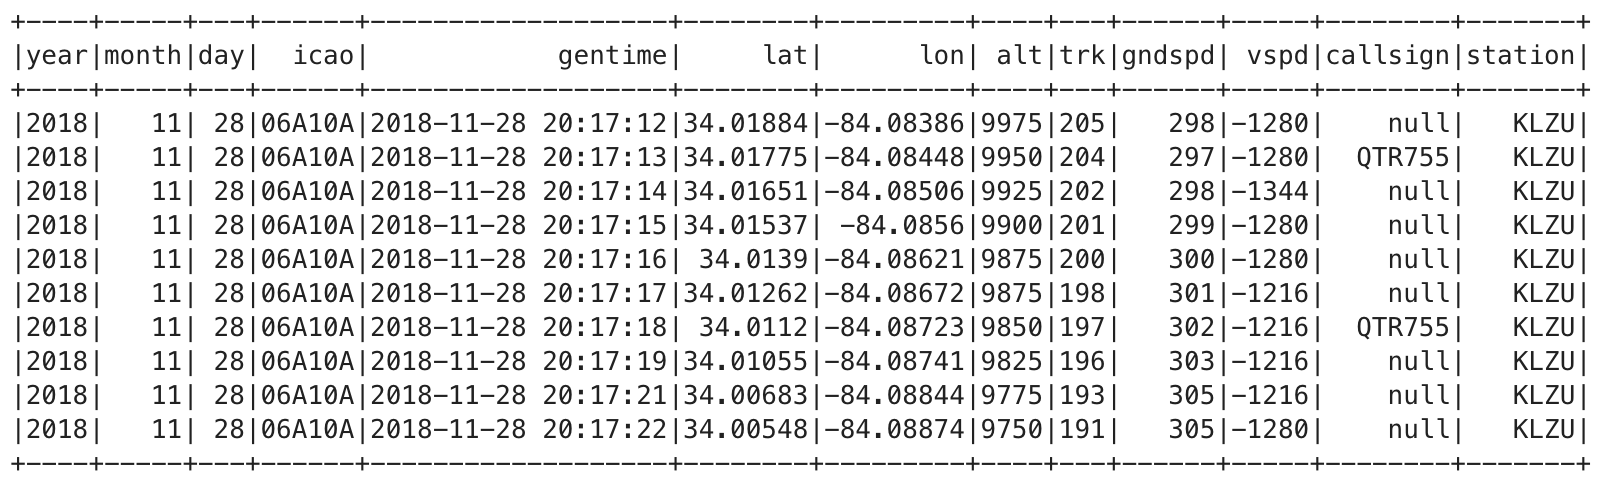 Exporting Cassandra time series data to S3 for data analysis